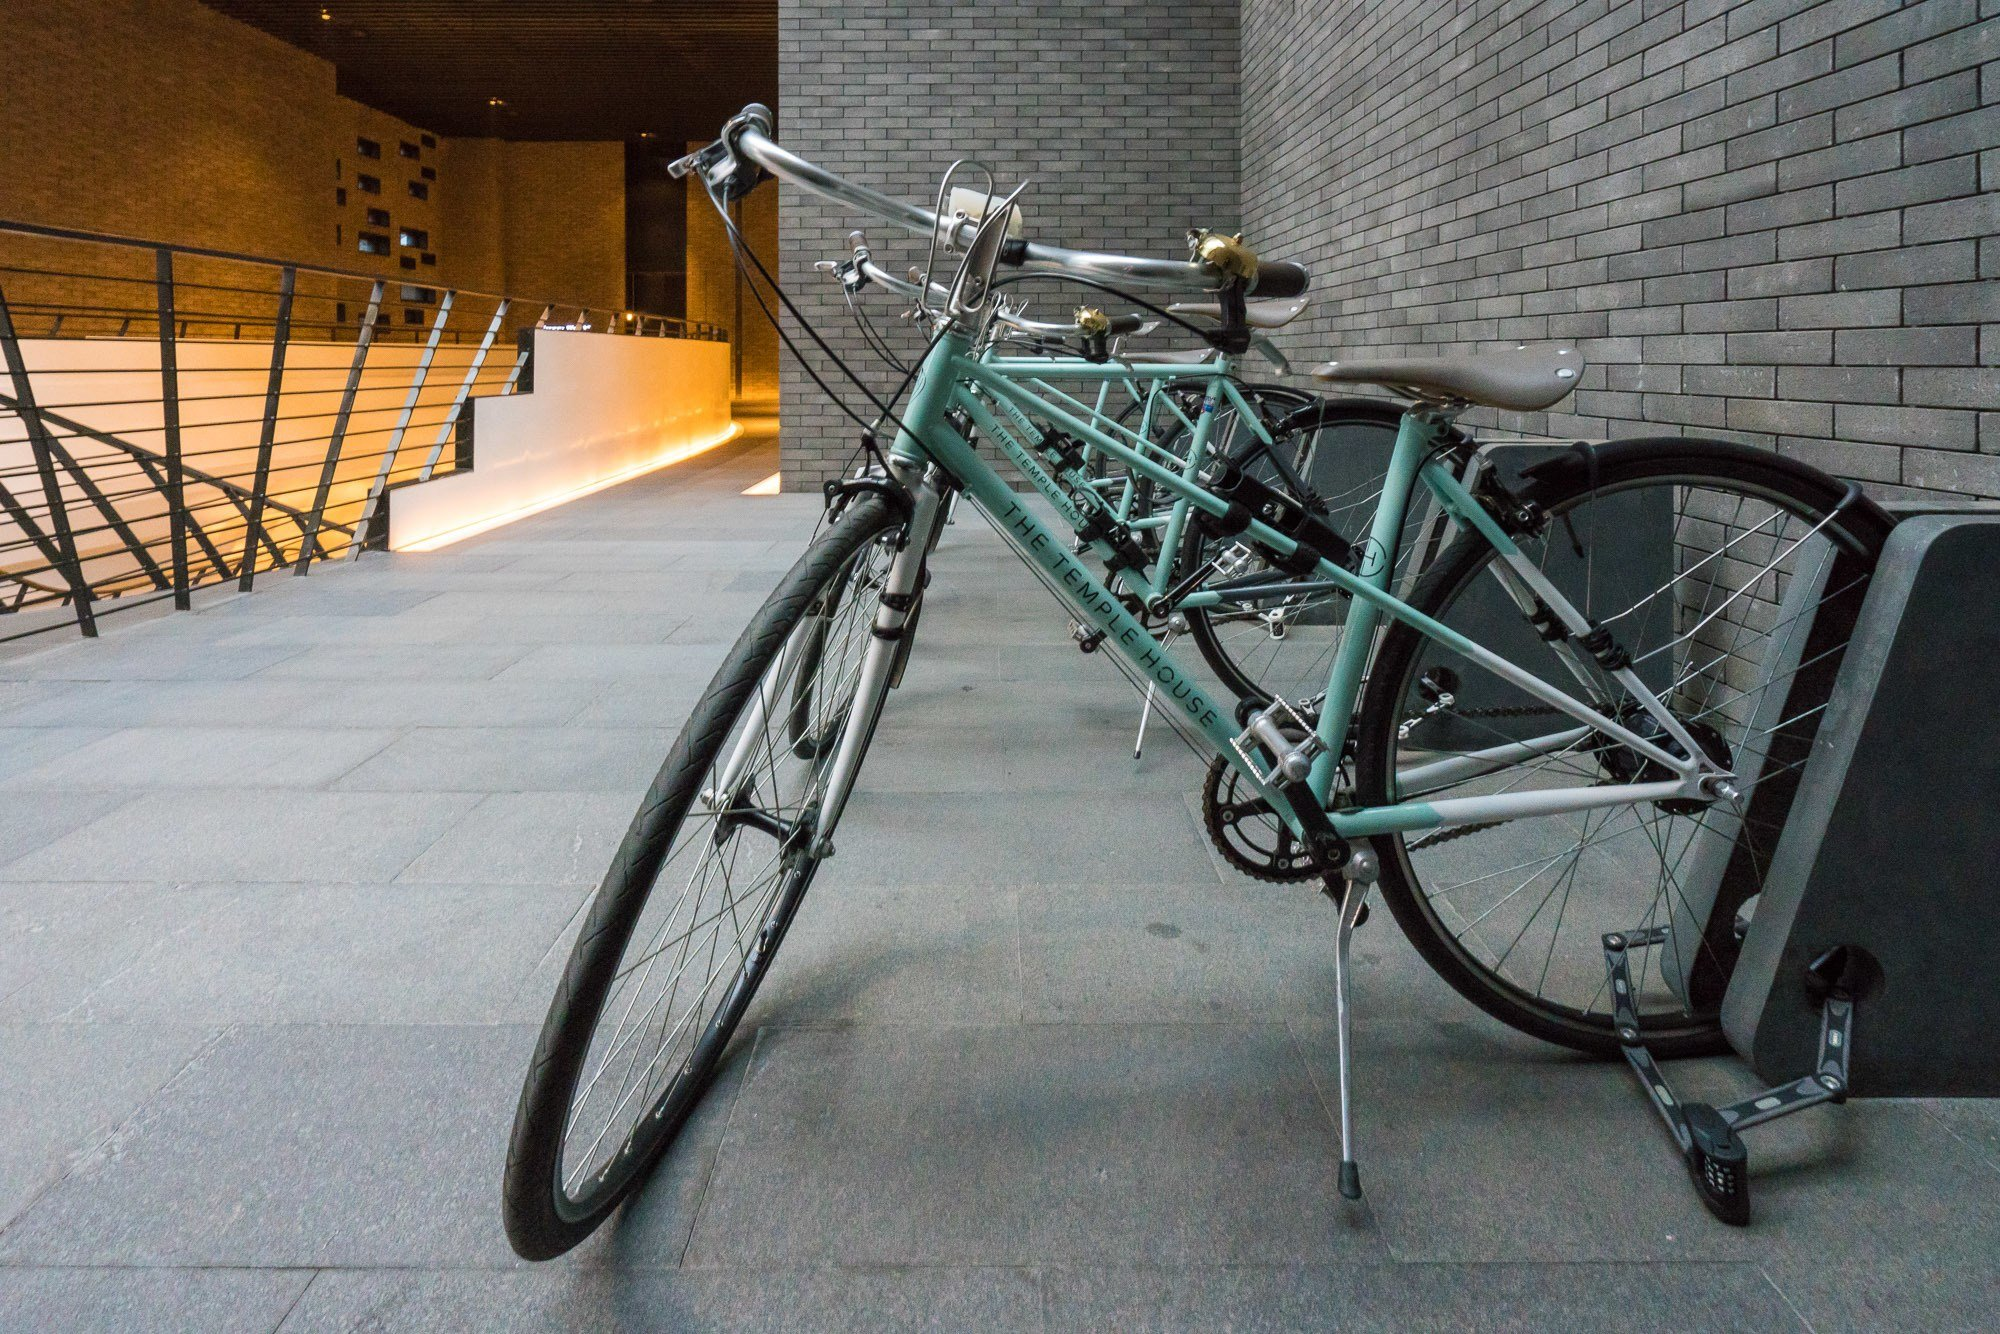 Guest of The Temple House in Chengdu can use the hotel's complimentary bikes.